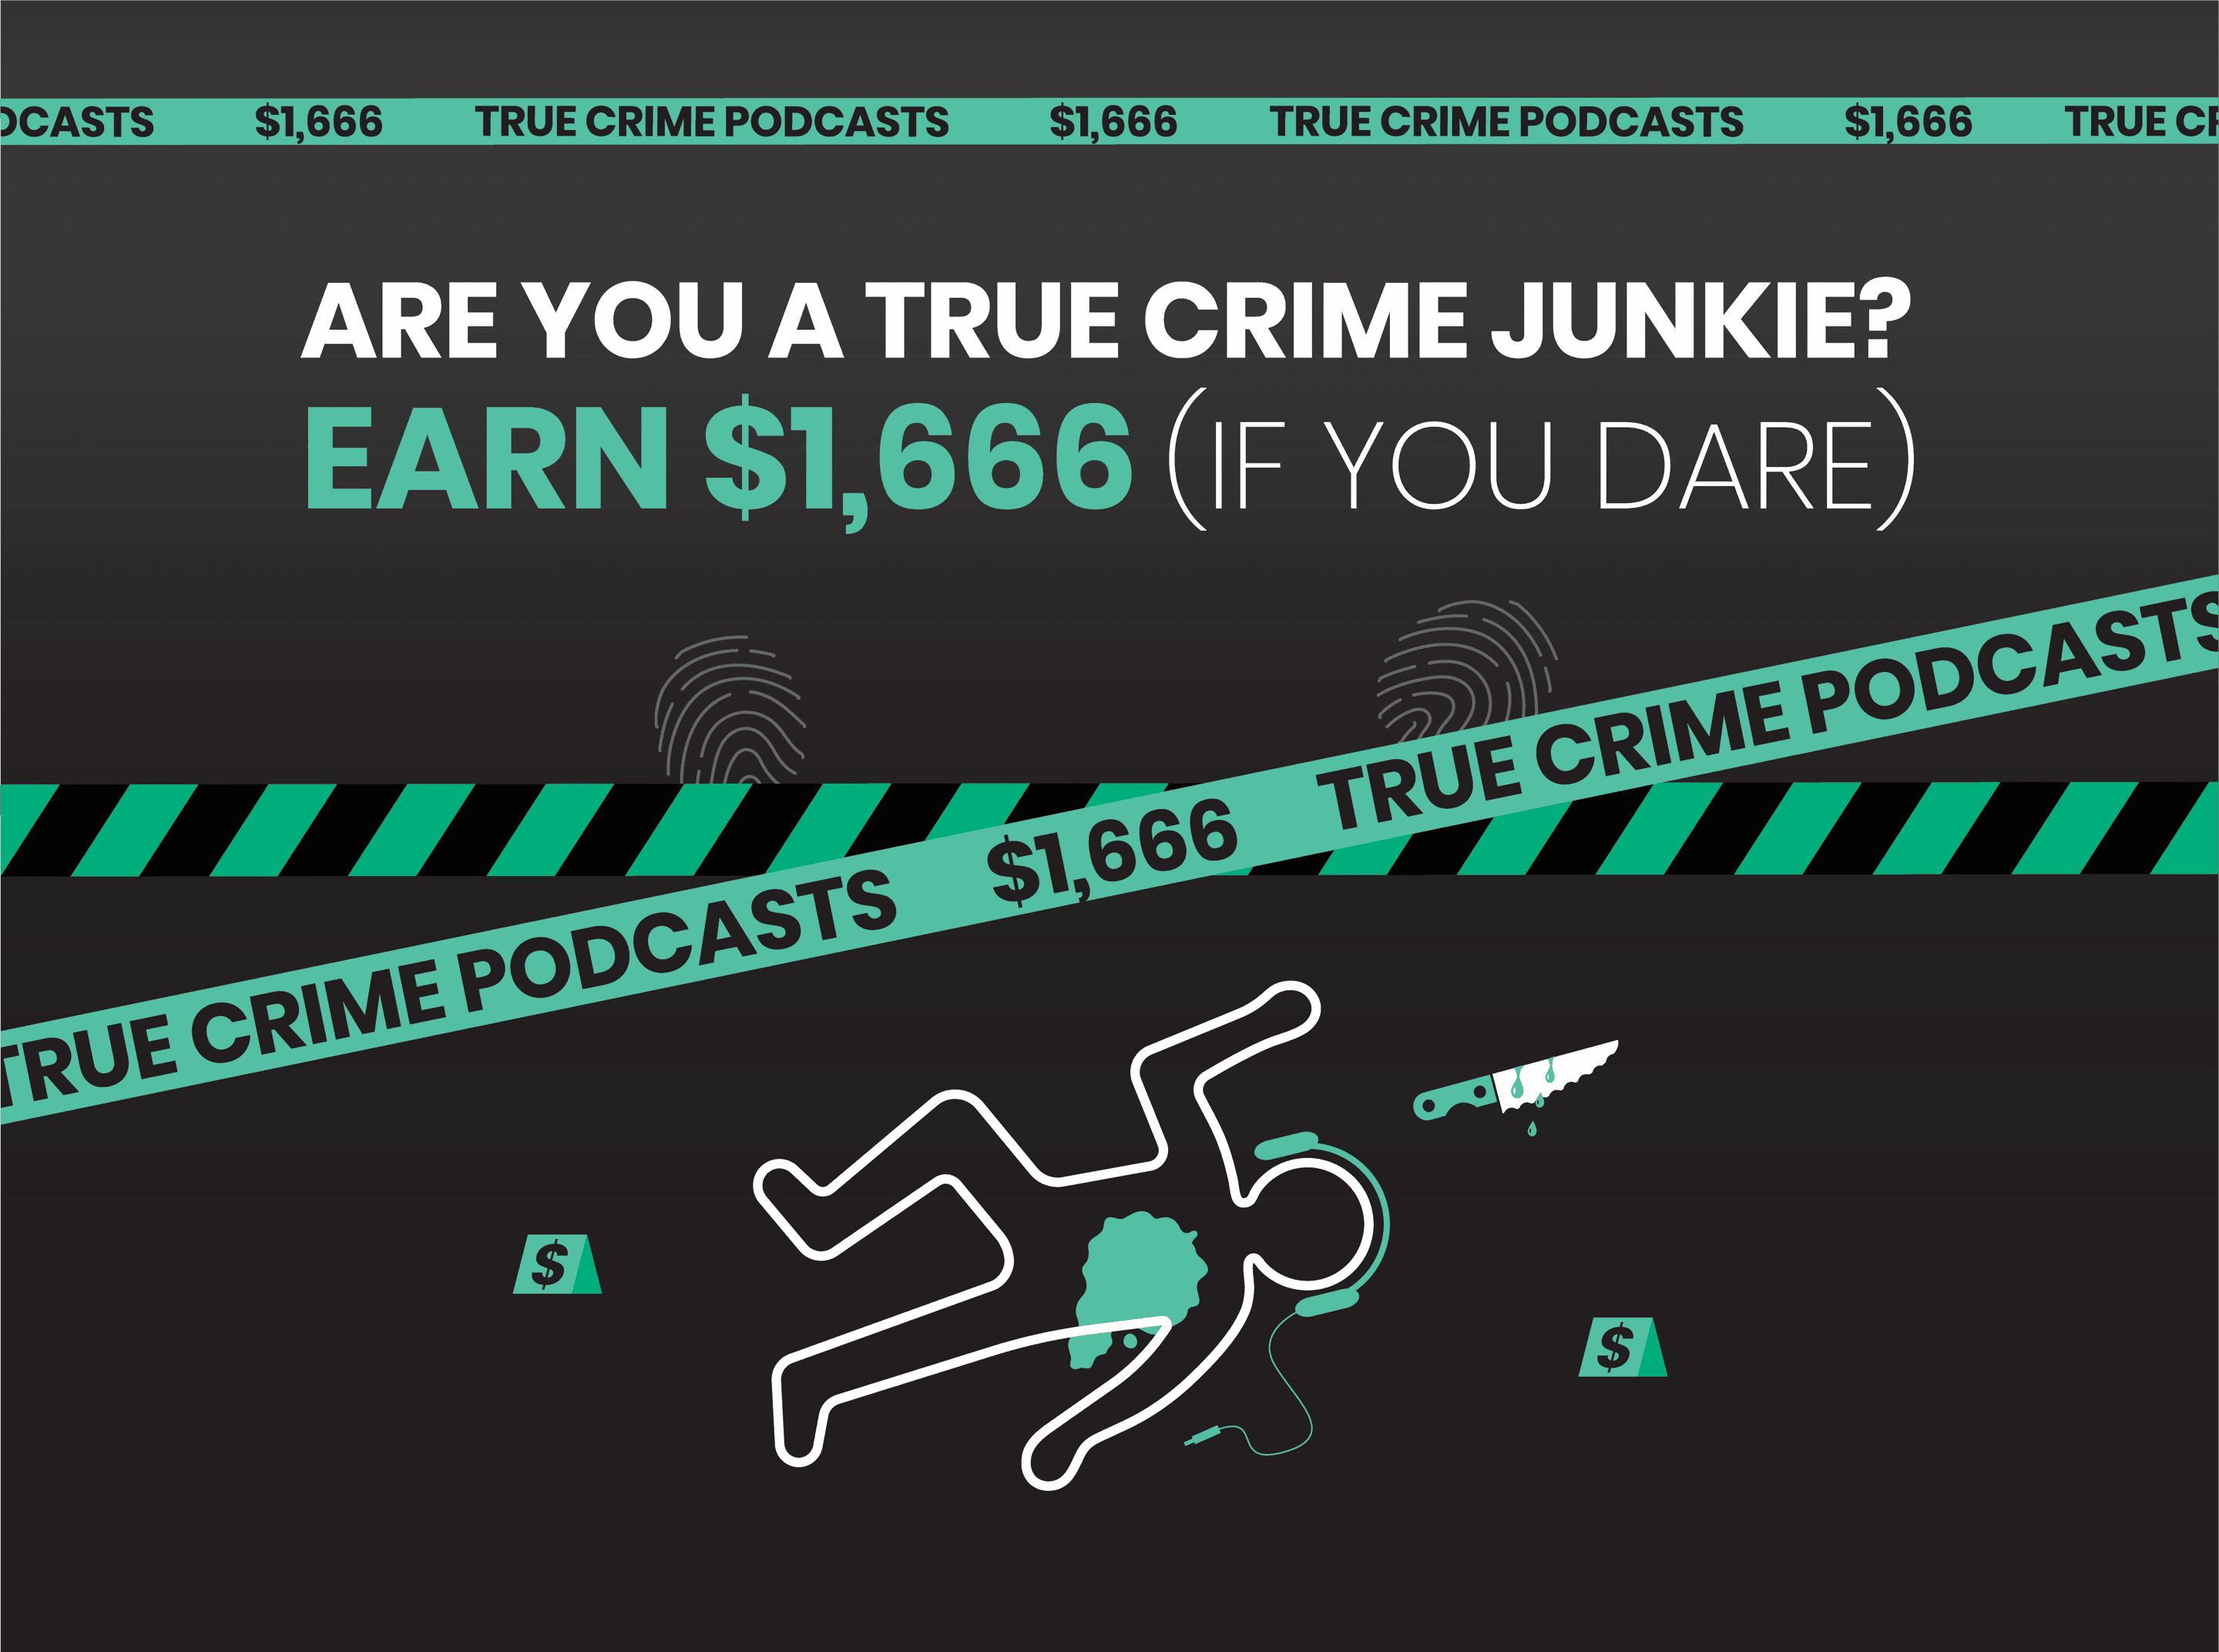 Are You a True Crime Junkie? Earn $1,666 (if you dare)